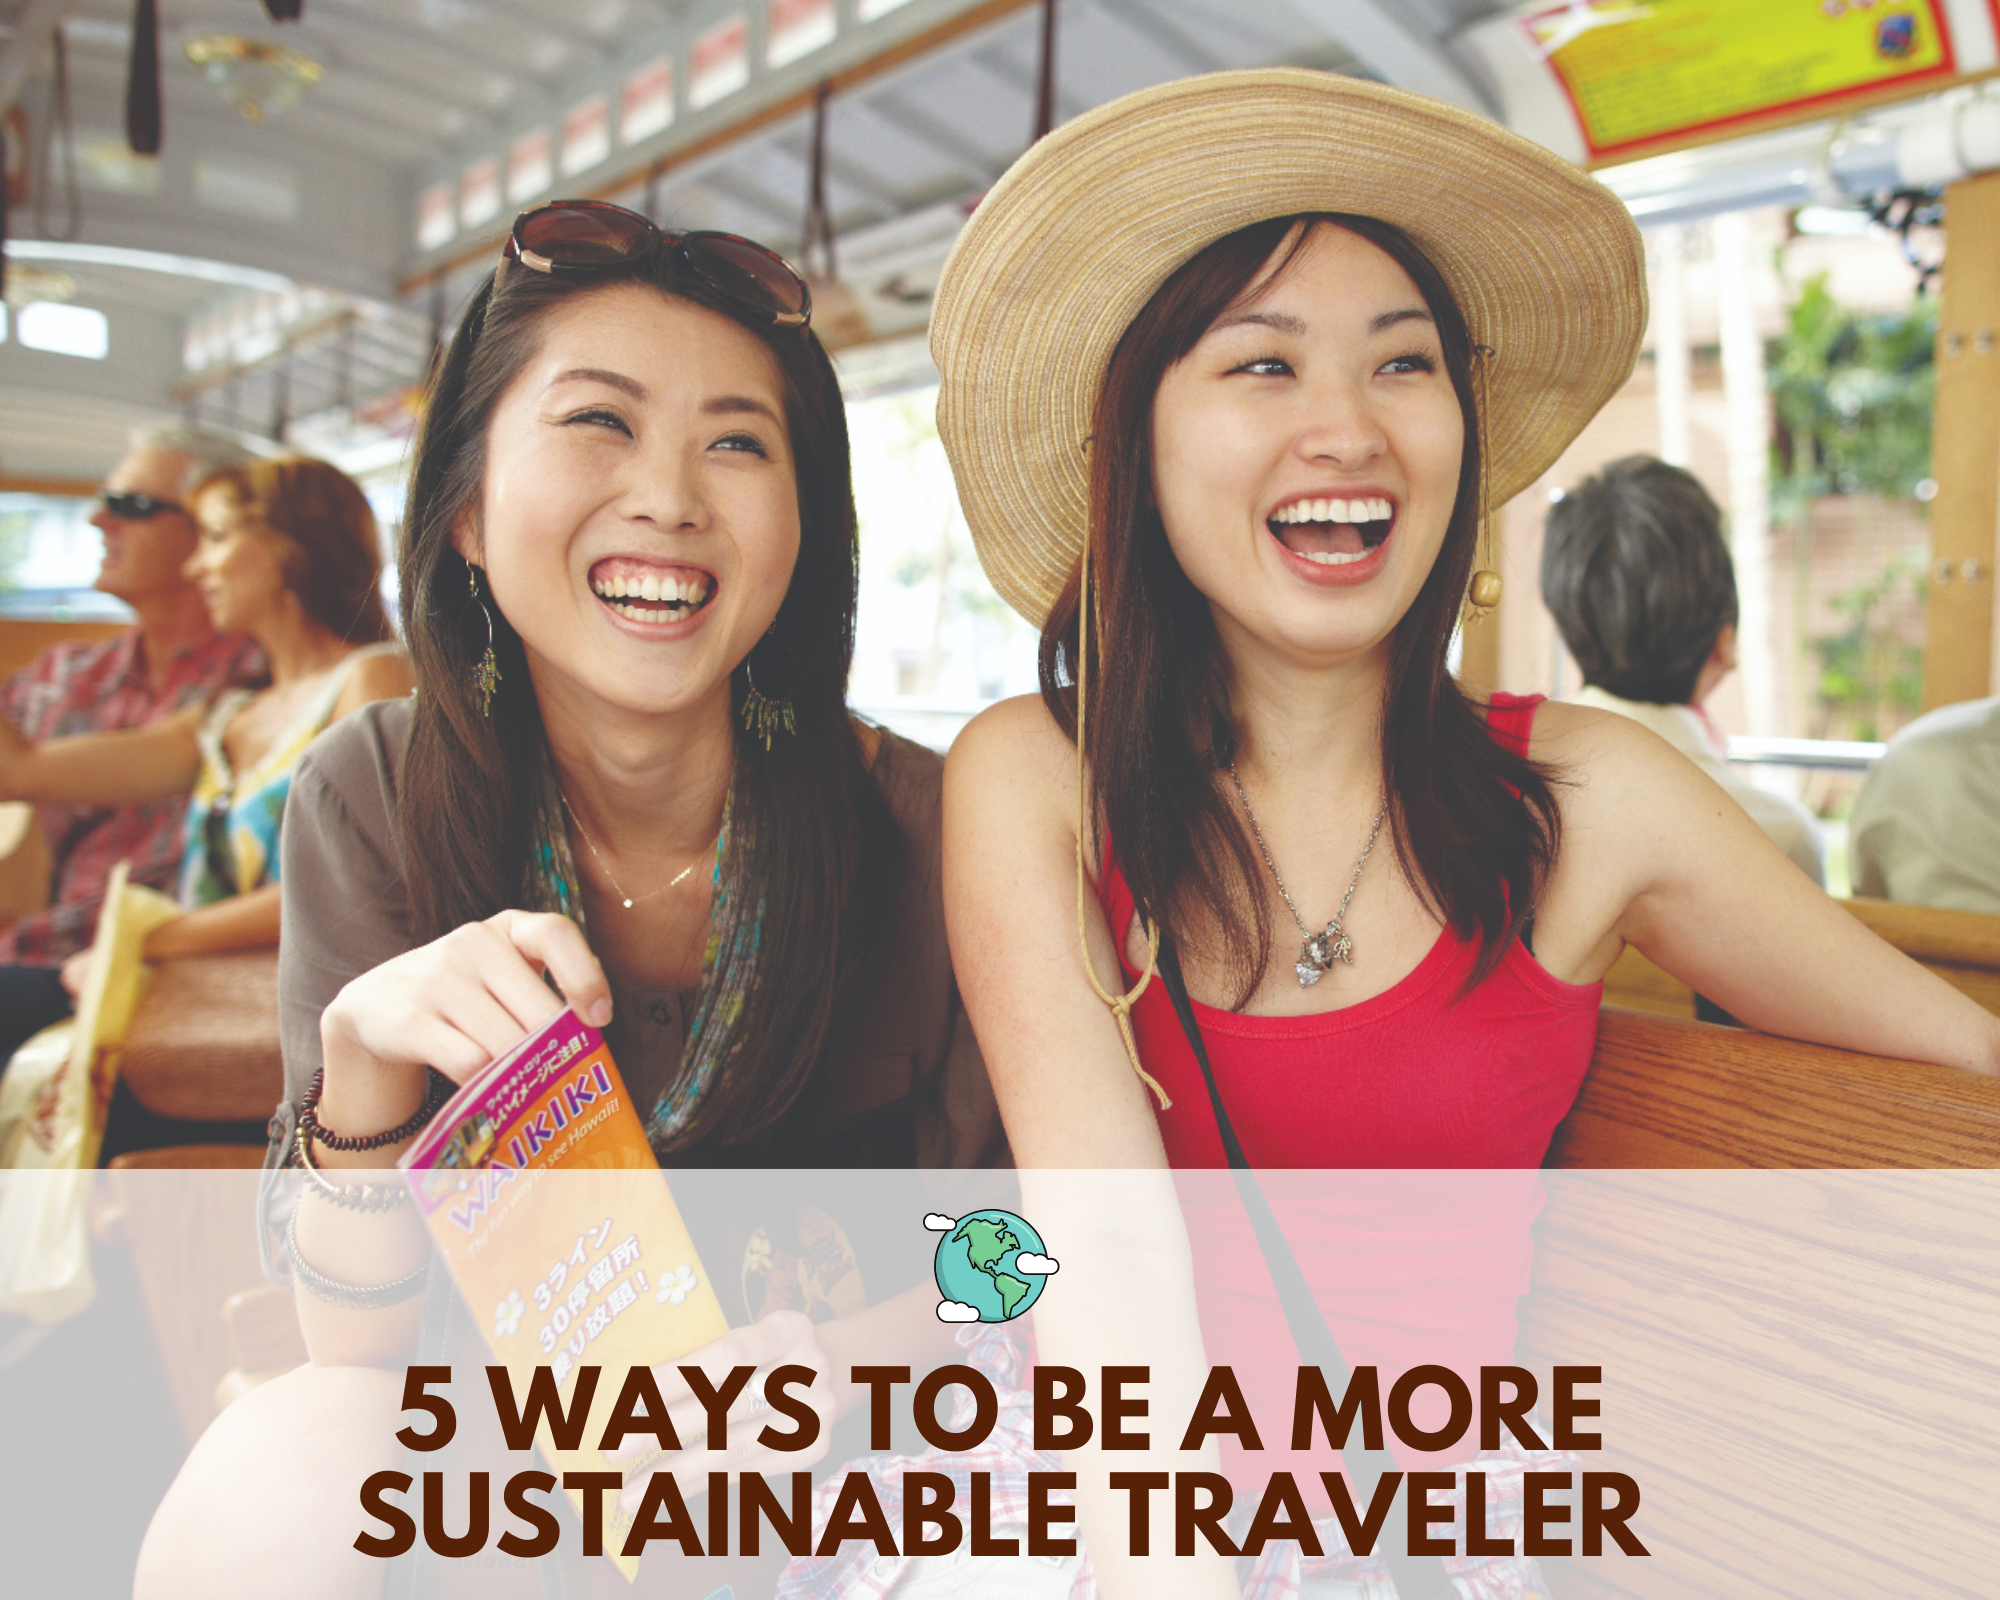 5 Ways to Be a More Sustainable Traveler